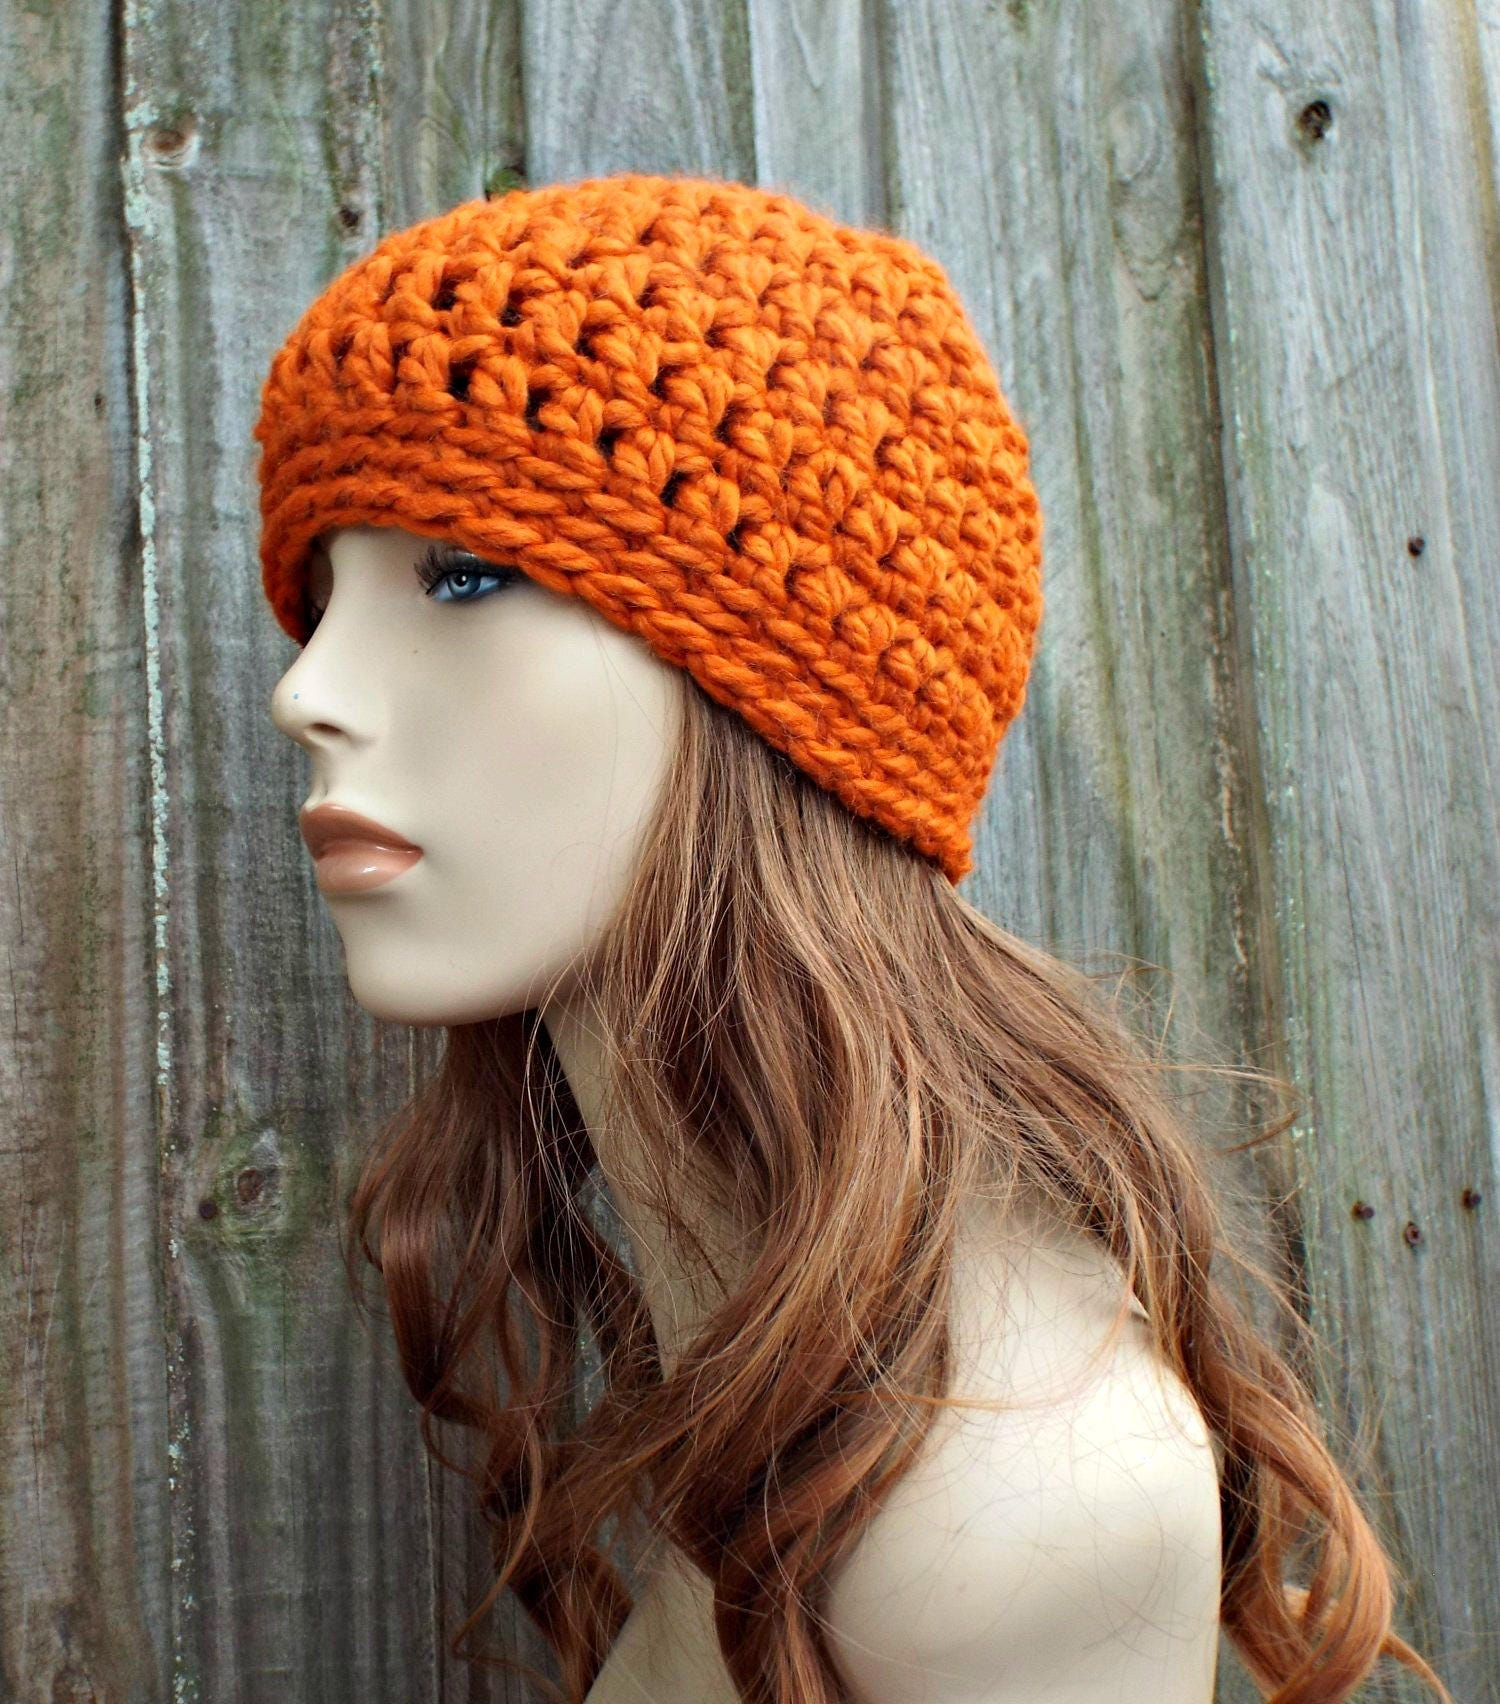 Pumpkin Orange Beanie - Orange Crochet Hat Orange Womens Hat Orange Mens  Hat - Warm Winter Hat - Orange Hat - READY TO SHIP 73ce97197fd